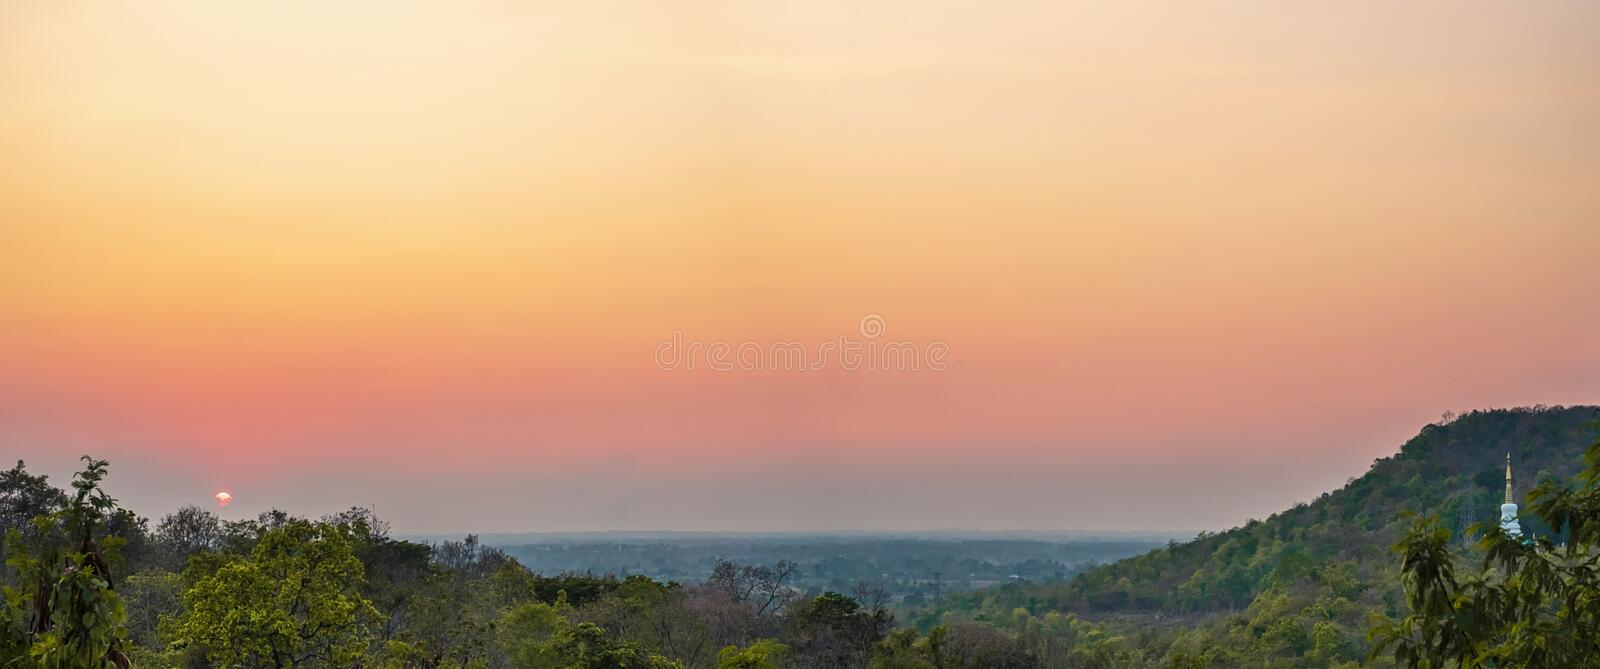 Natural viewpoint at sunset, Nong Bua Lamphu, Thailand.  stock photo